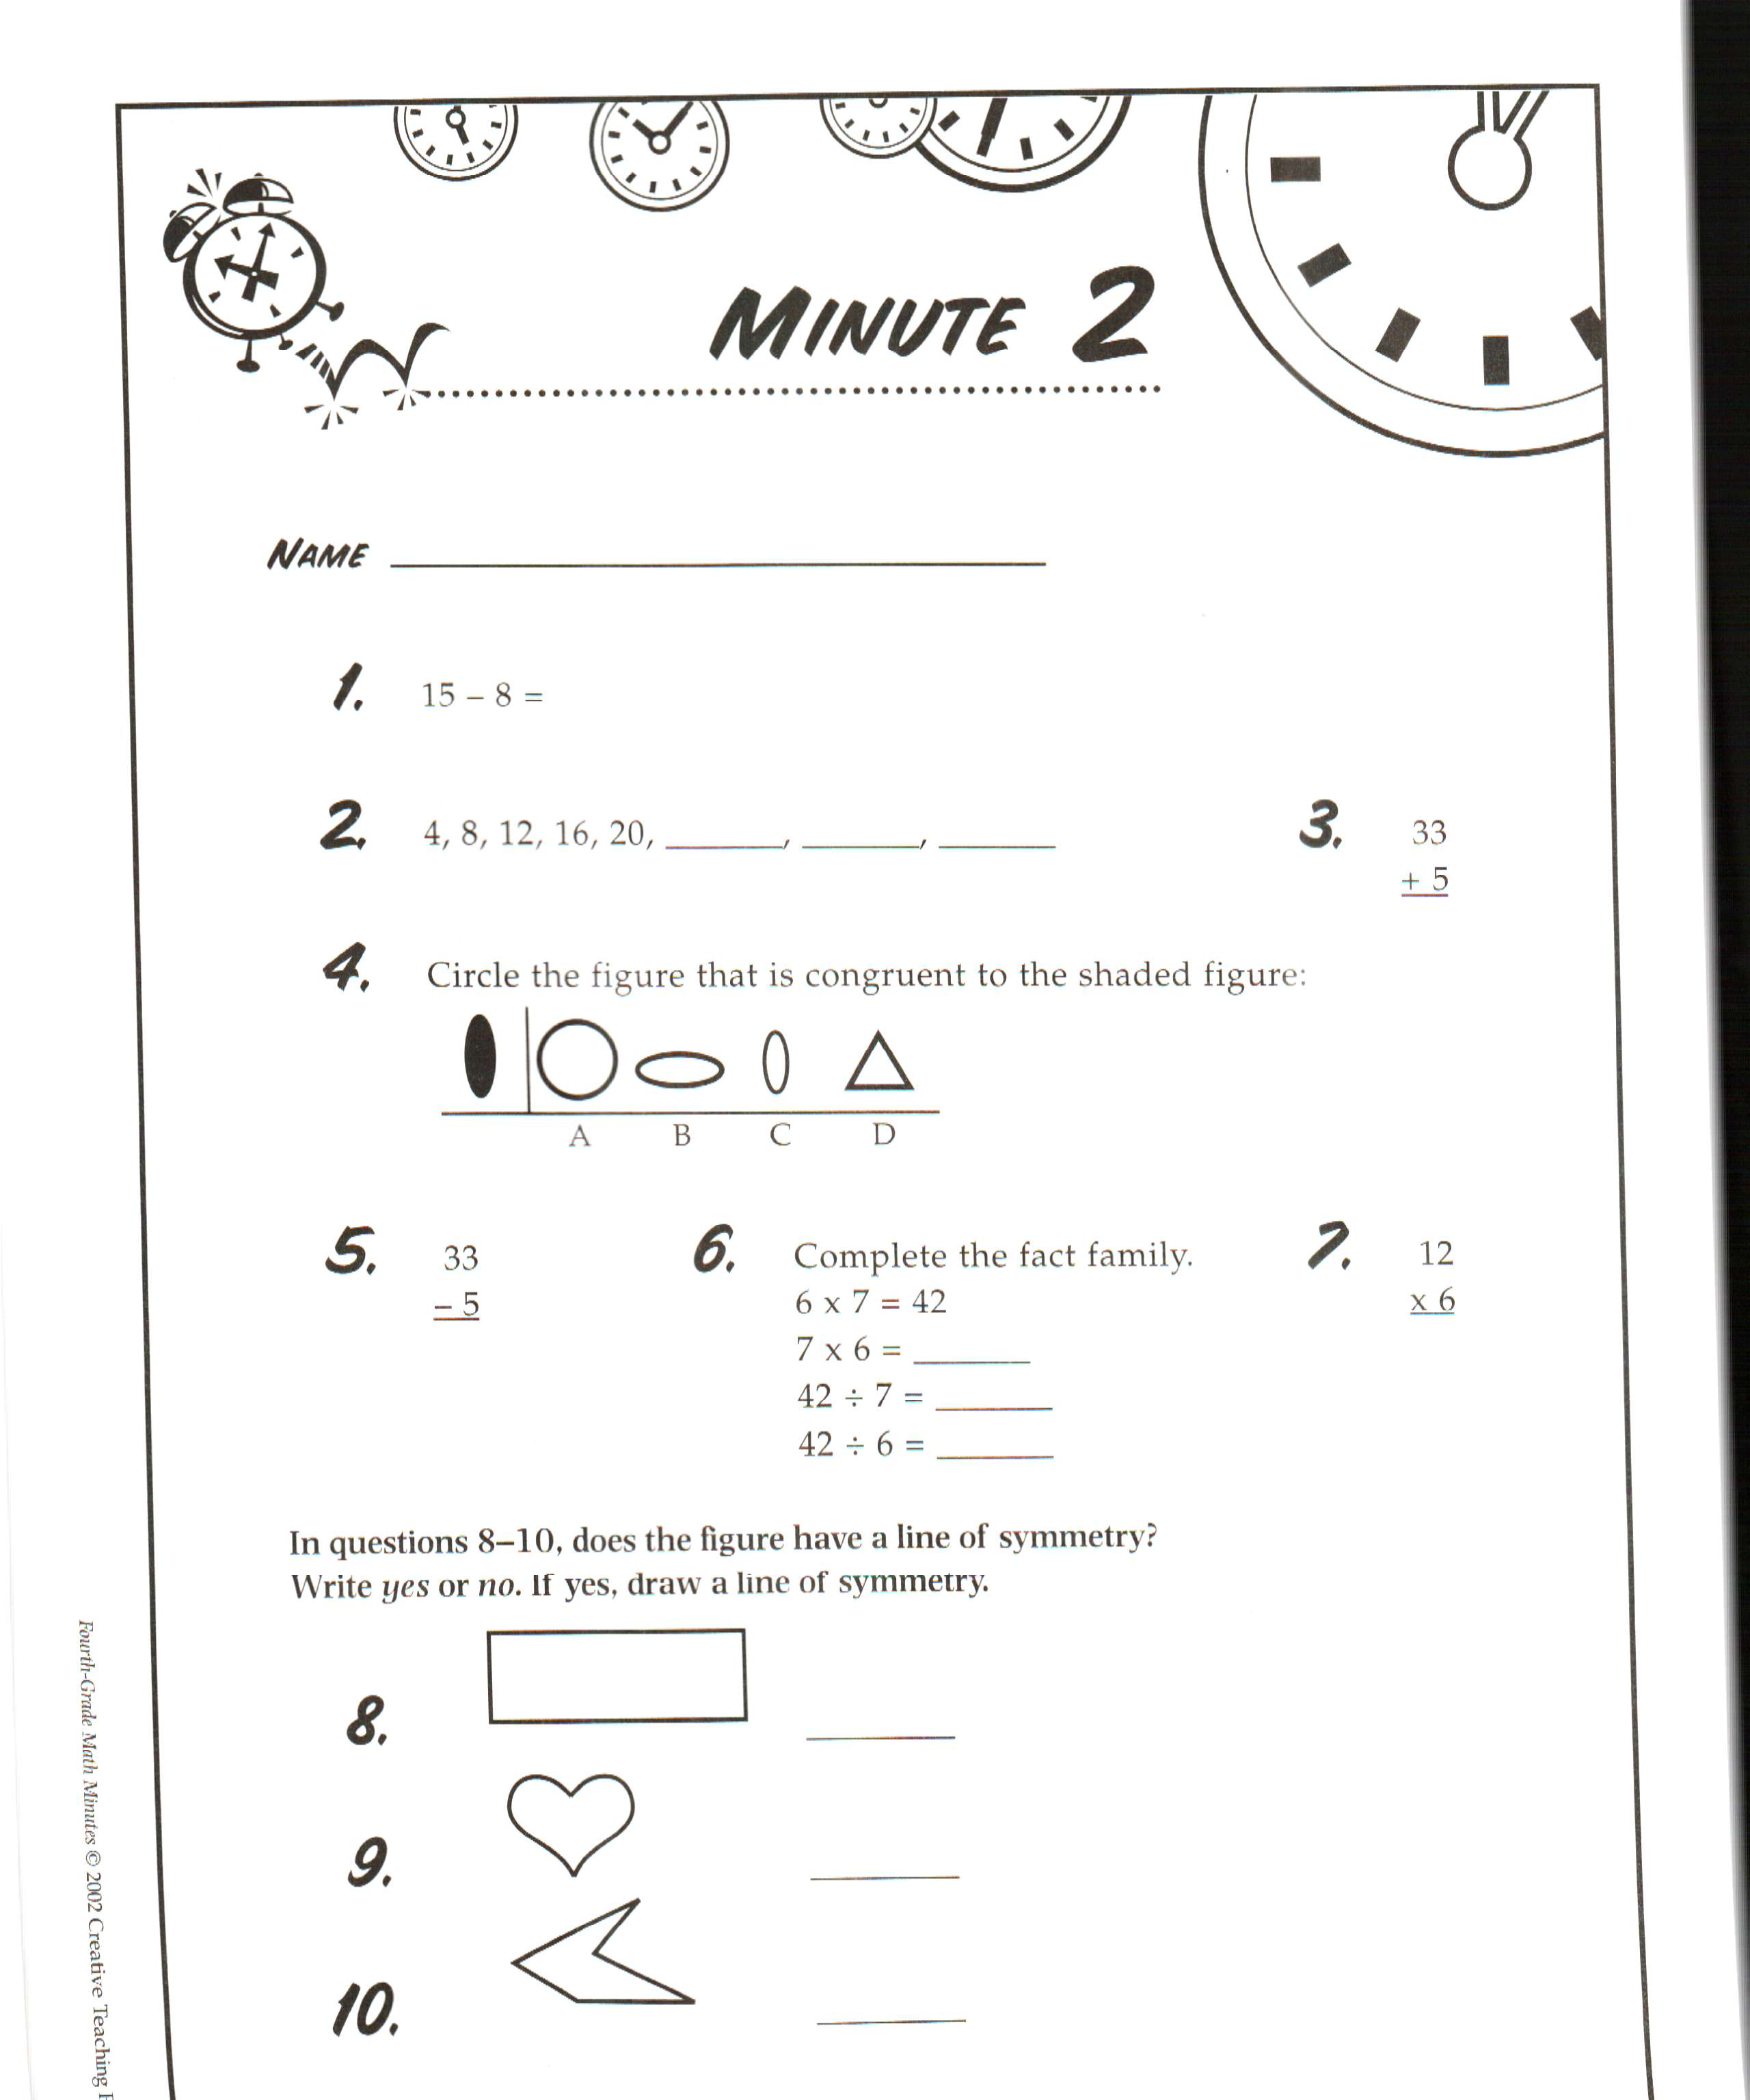 Printables Math Minutes Worksheets 3rd grade daily math minutes mrs faoro download file